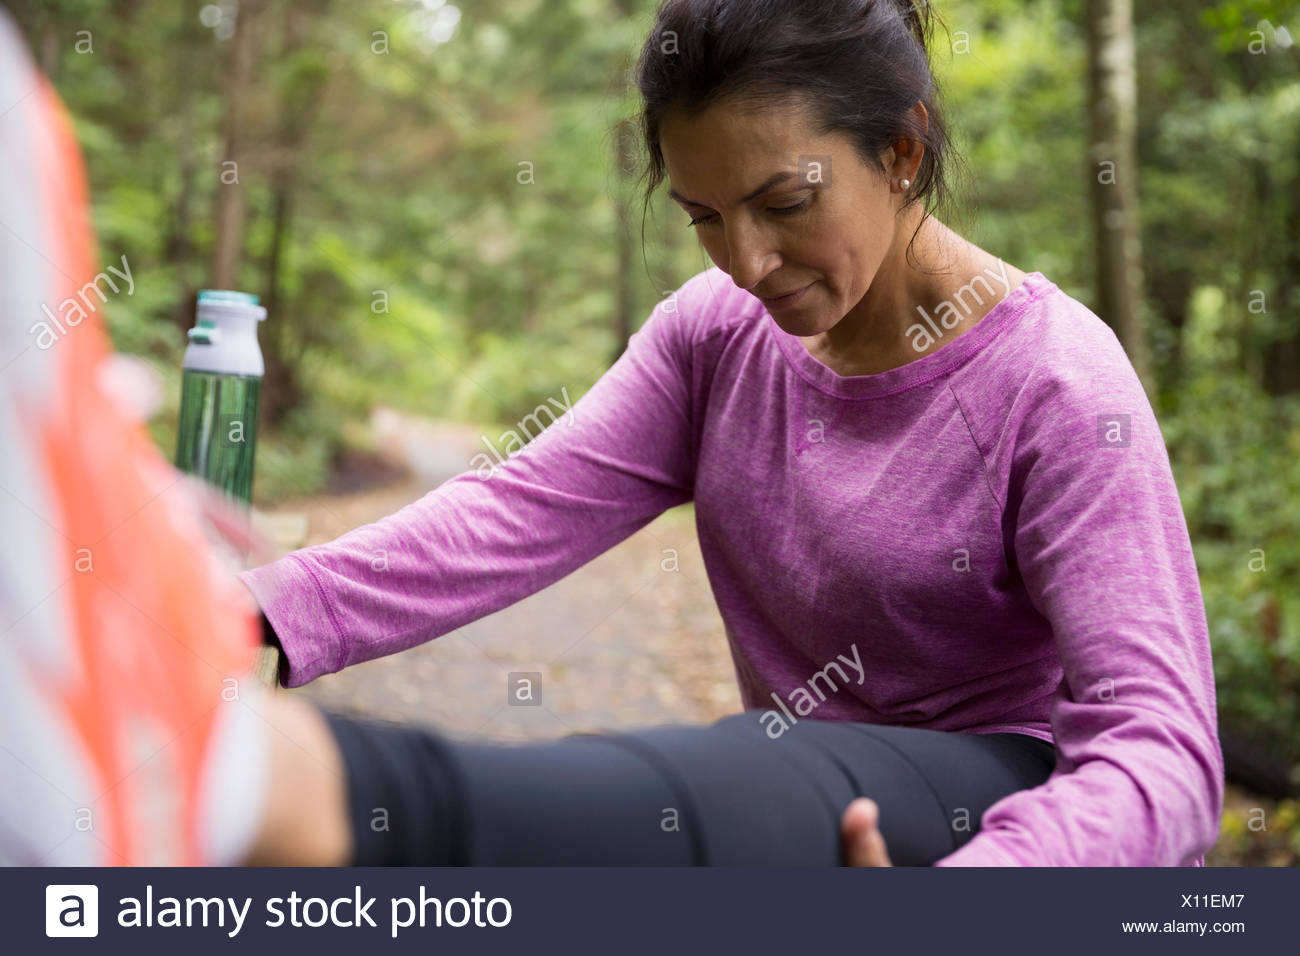 Woman stretching leg preparing for run in woods - Stock Image